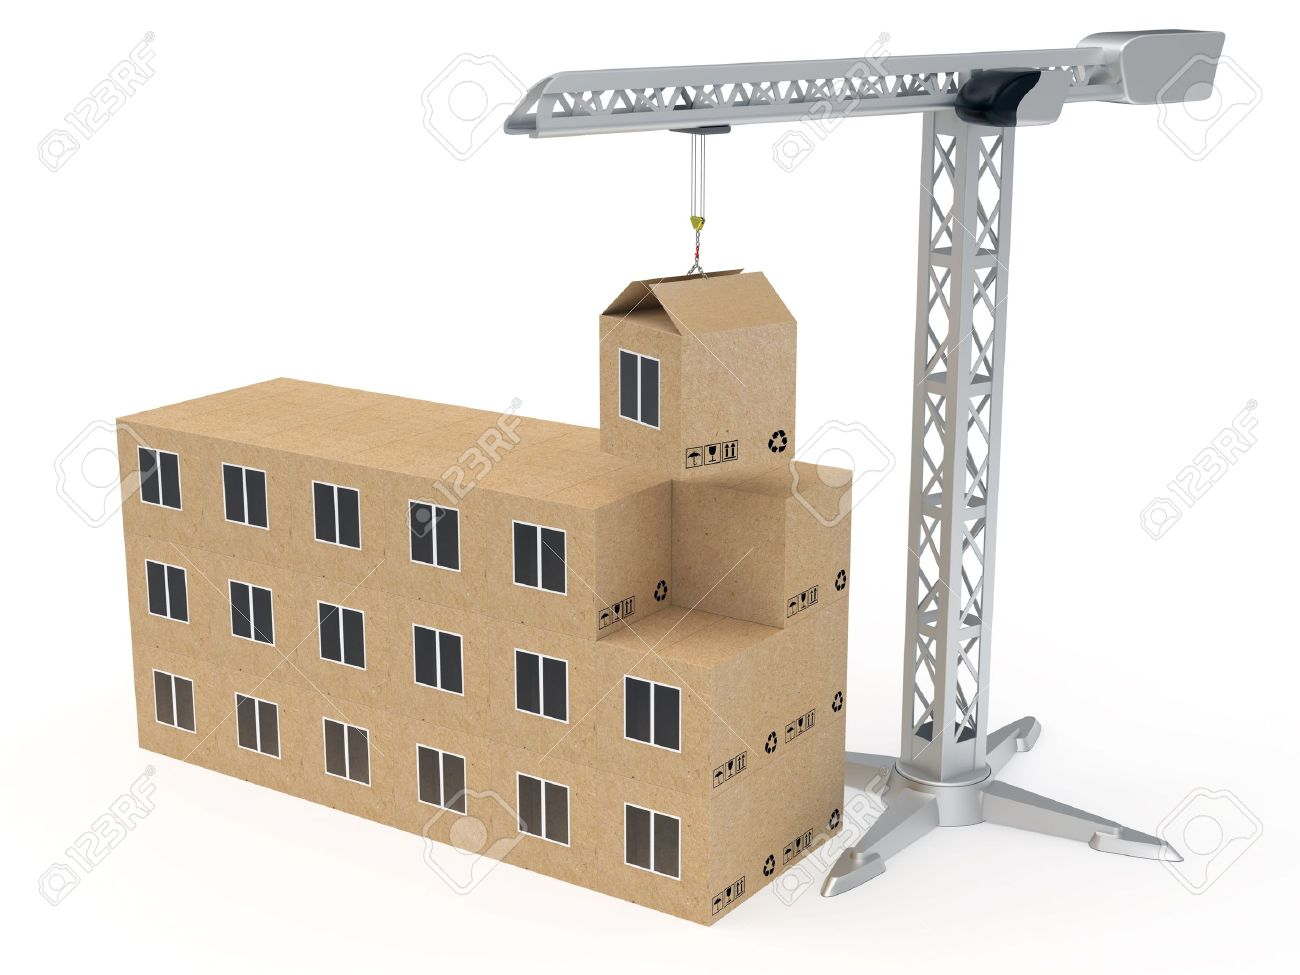 Tower crane building a house from cardboard boxes rendered with soft shadows on white background Stock Photo - 10711744